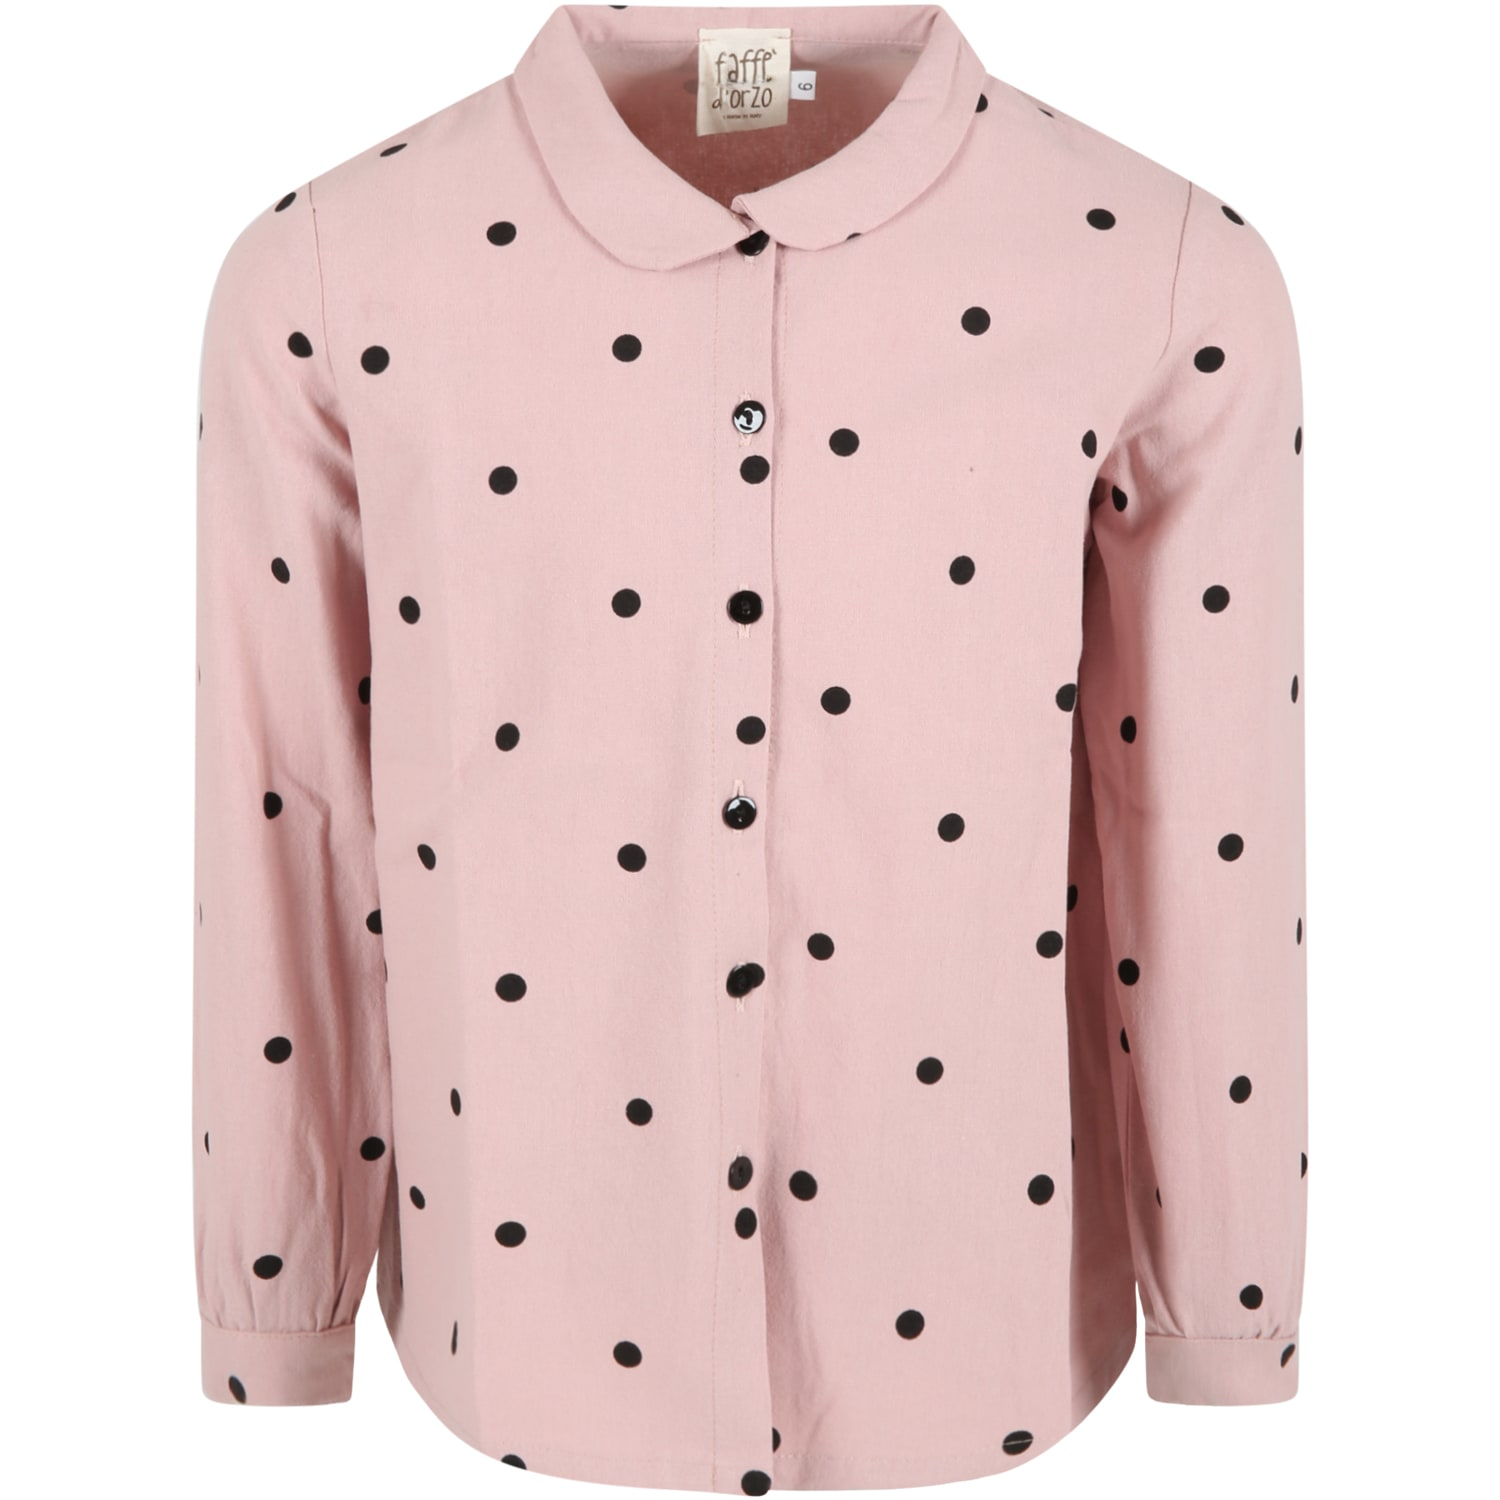 Caffe dOrzo Pink ele Shirt For Girl With Black Polka Dots